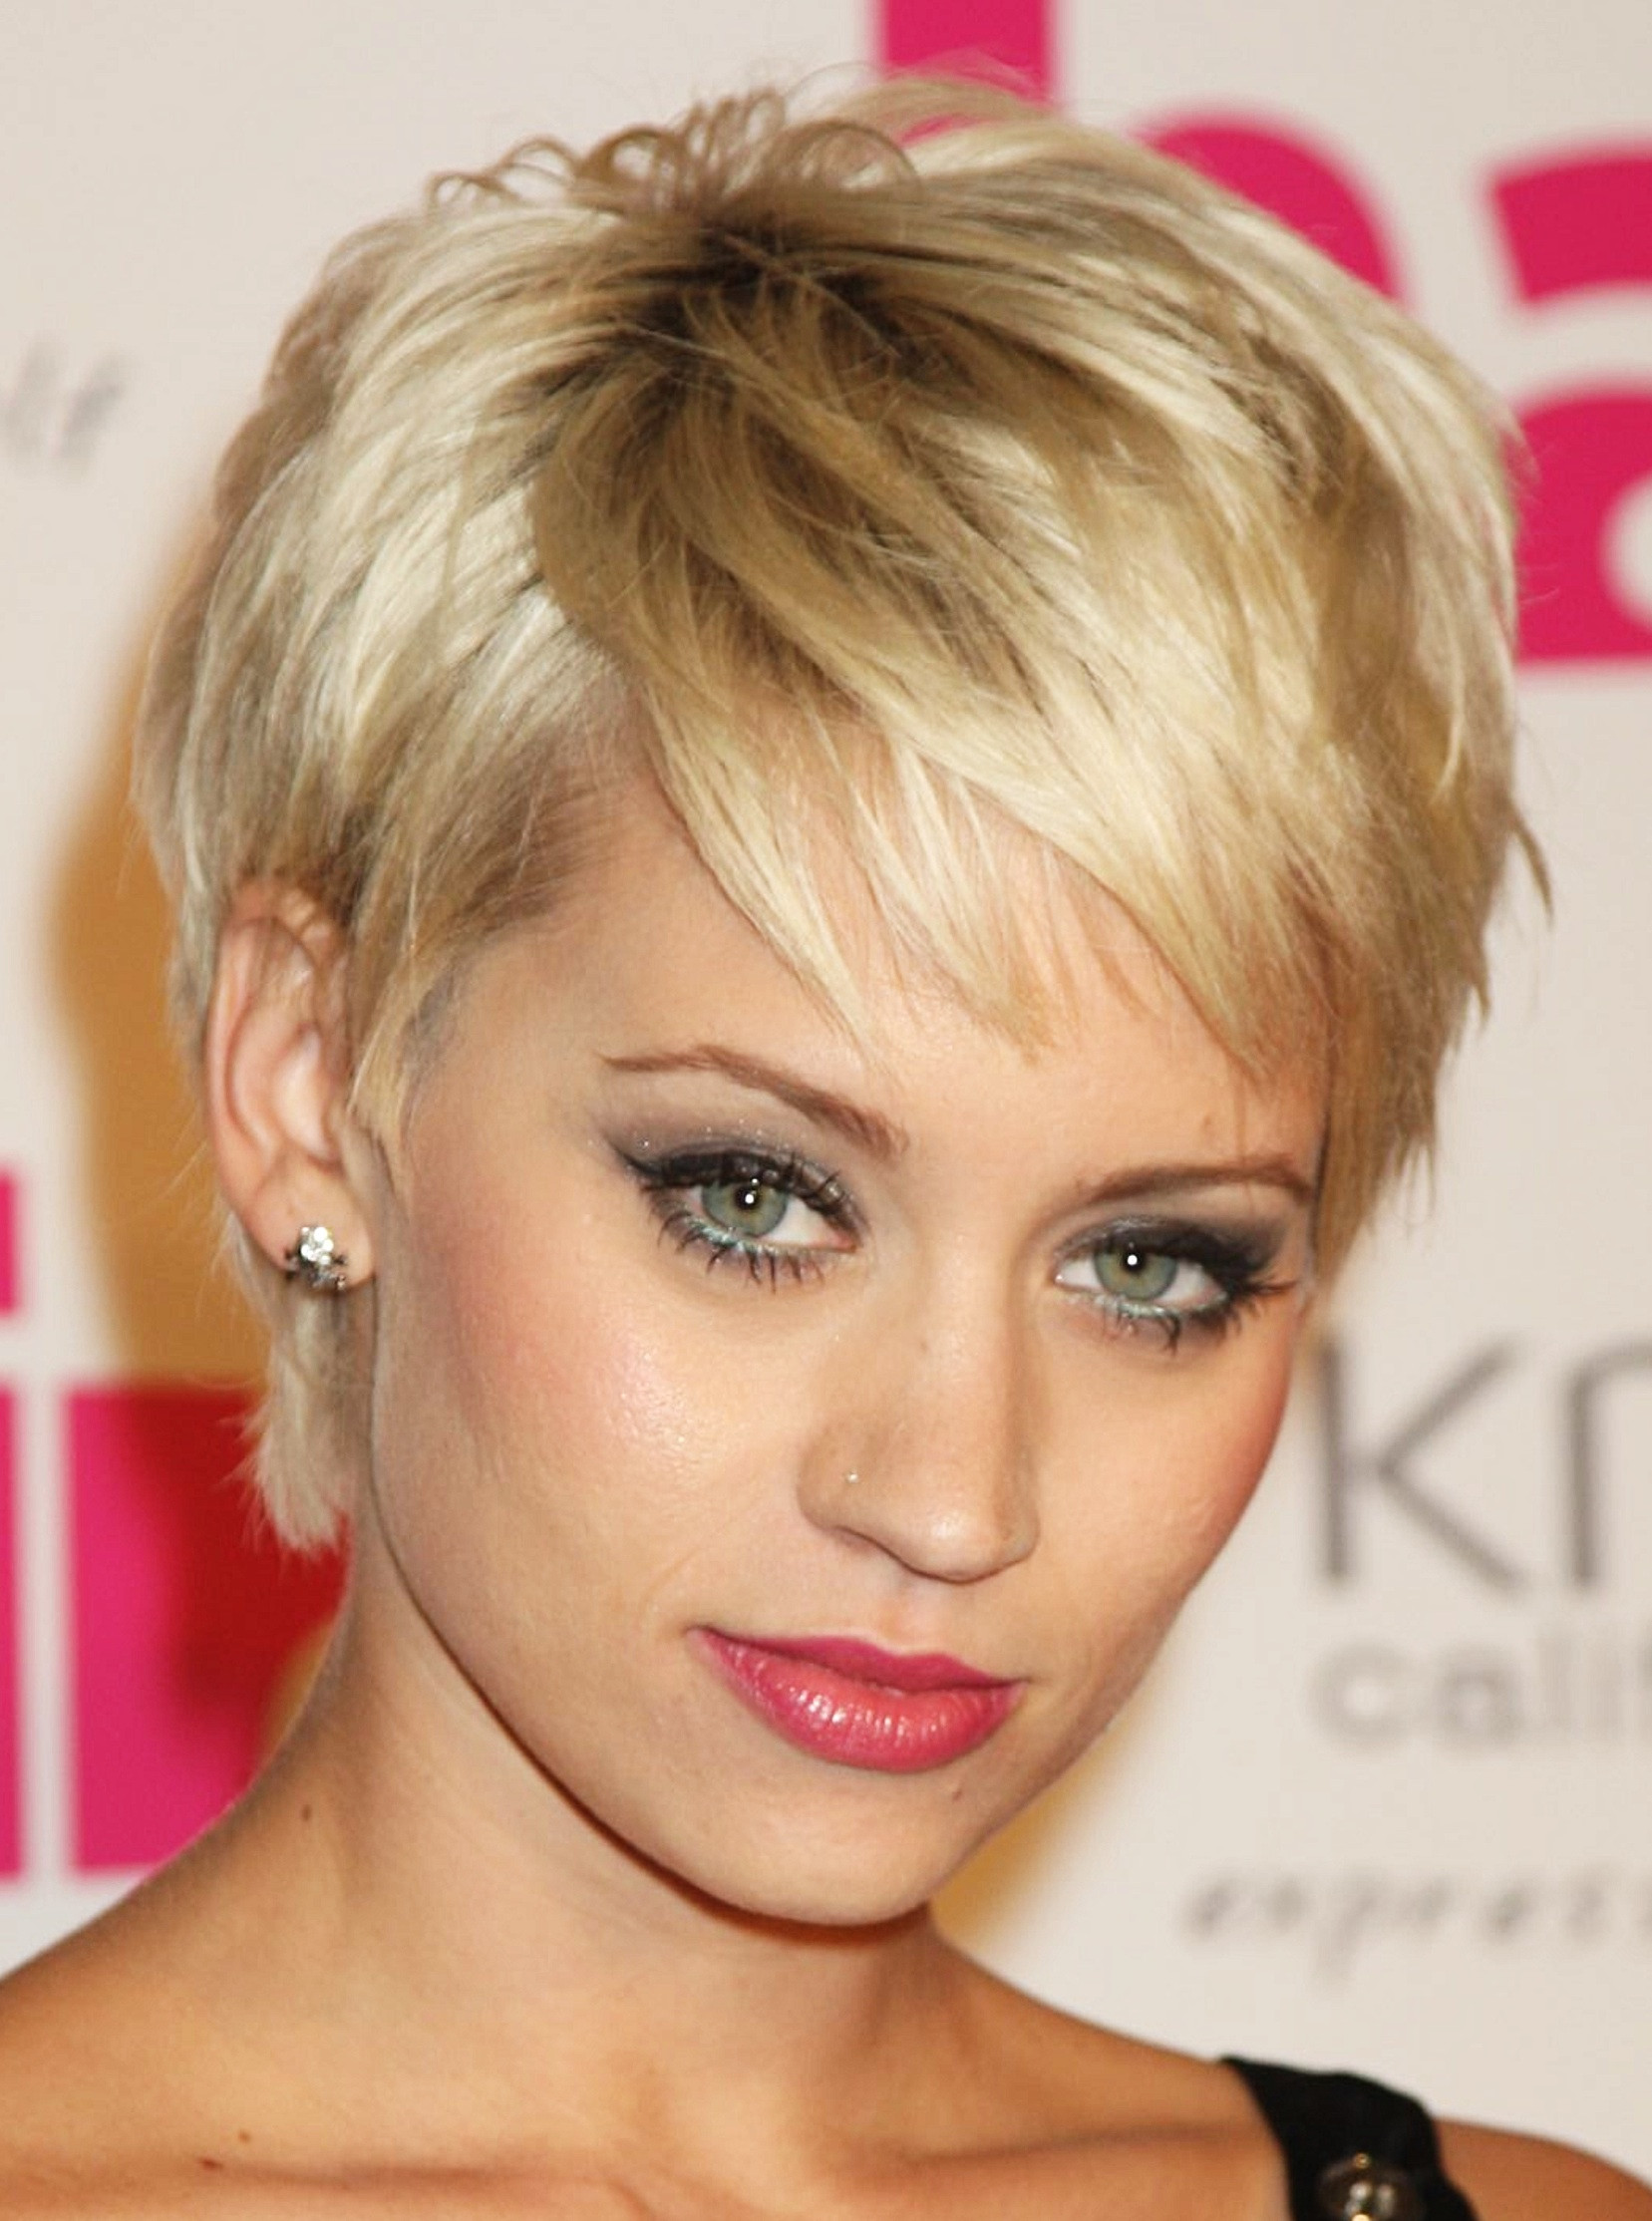 Best ideas about Hairstyle Short Hair . Save or Pin Short Cuts And Pixie Crops HairStyles Now.